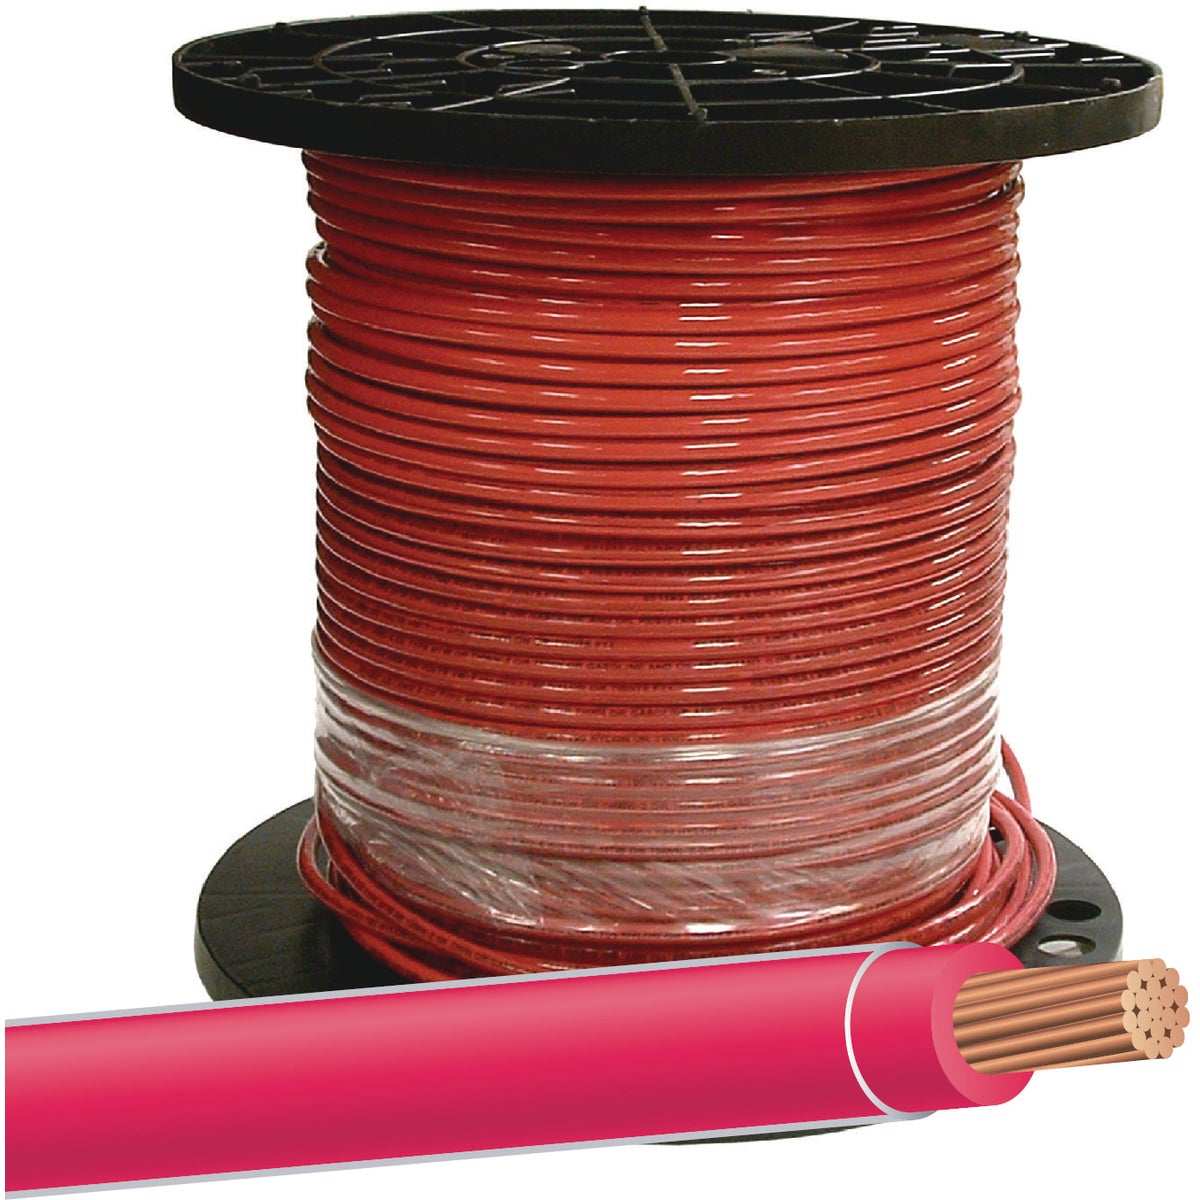 500' 8STR RED THHN WIRE